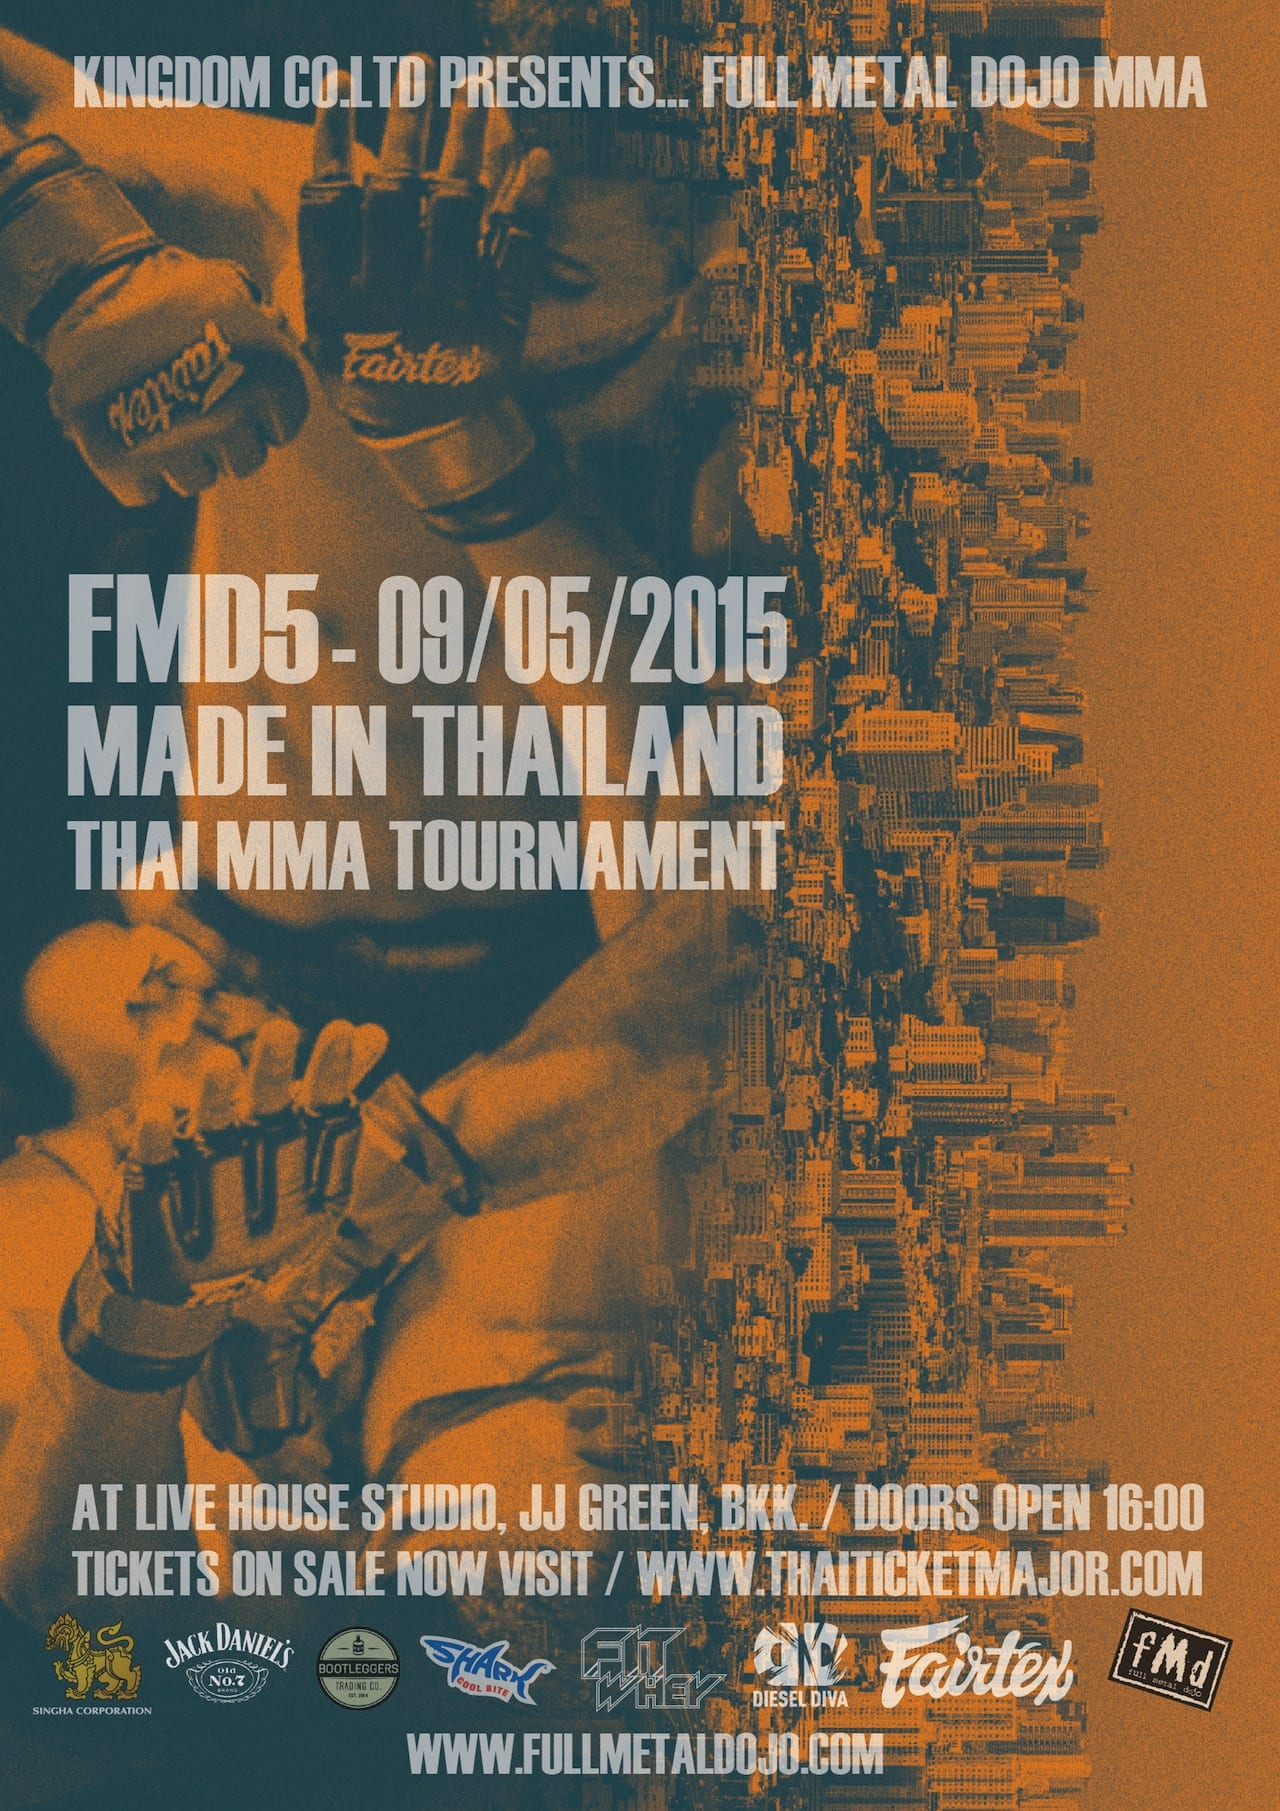 FMD5 Made in Thailand MMA Tournament